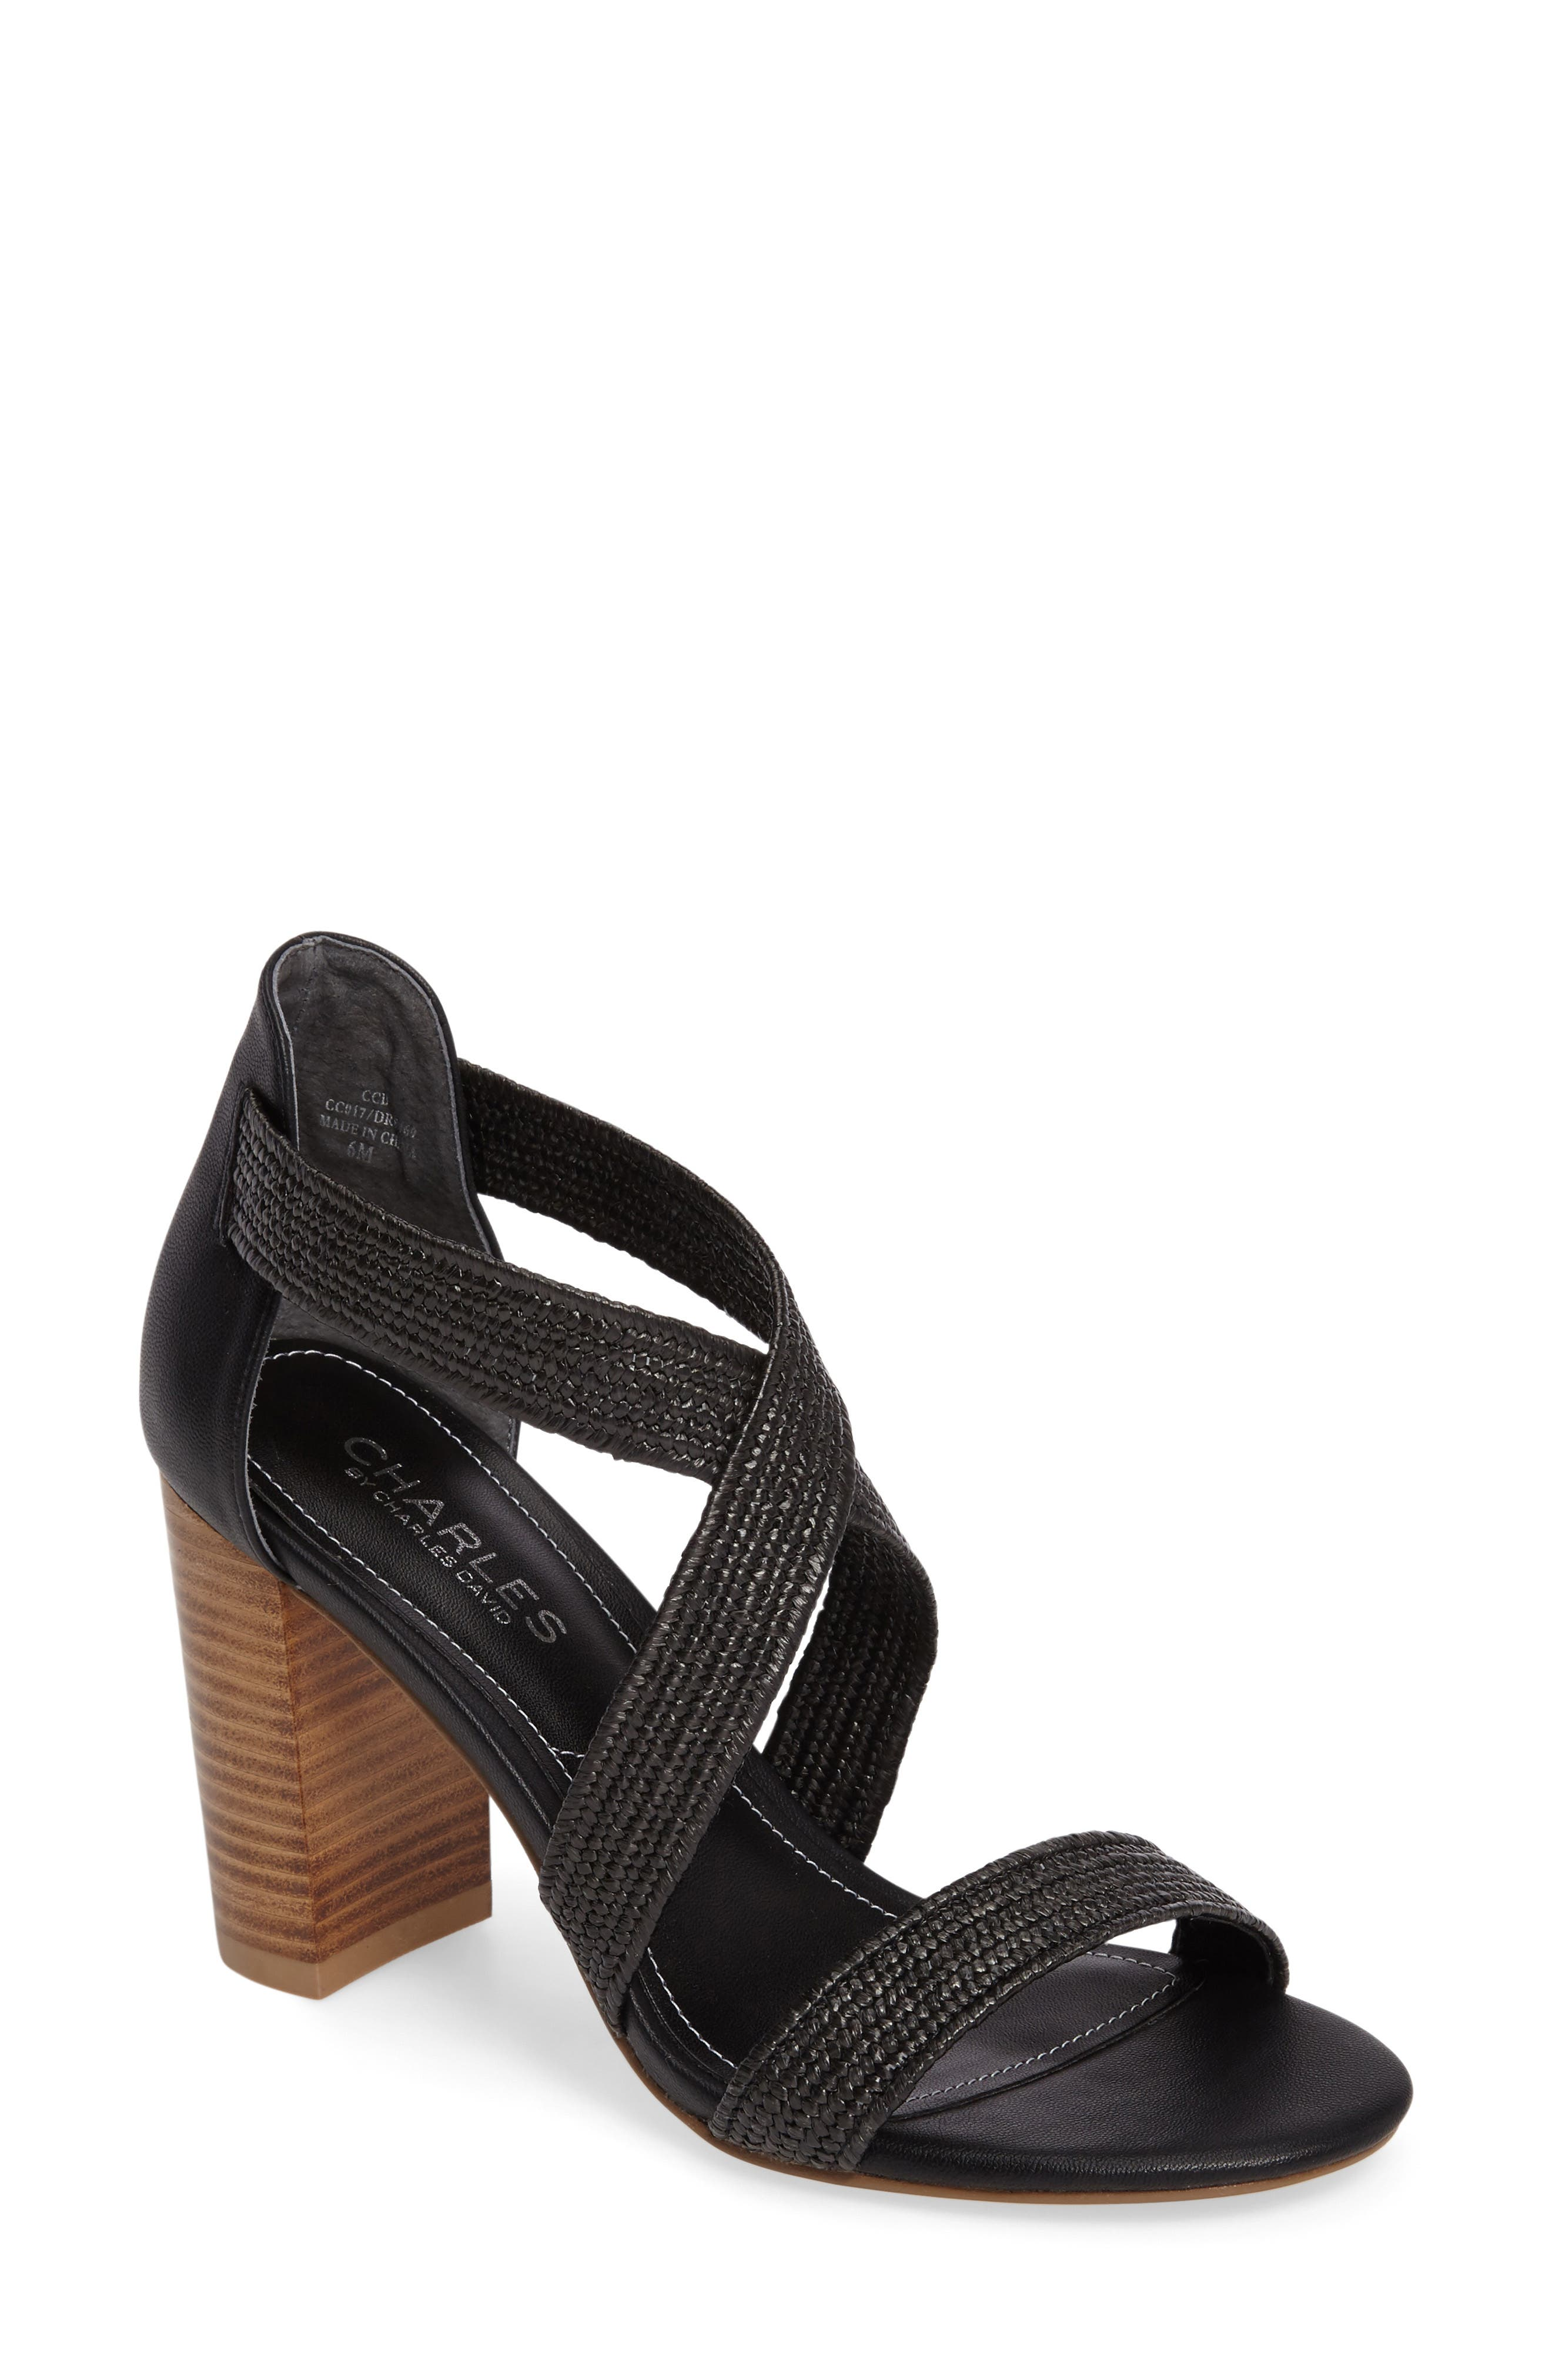 Emily Strappy Sandal,                         Main,                         color,